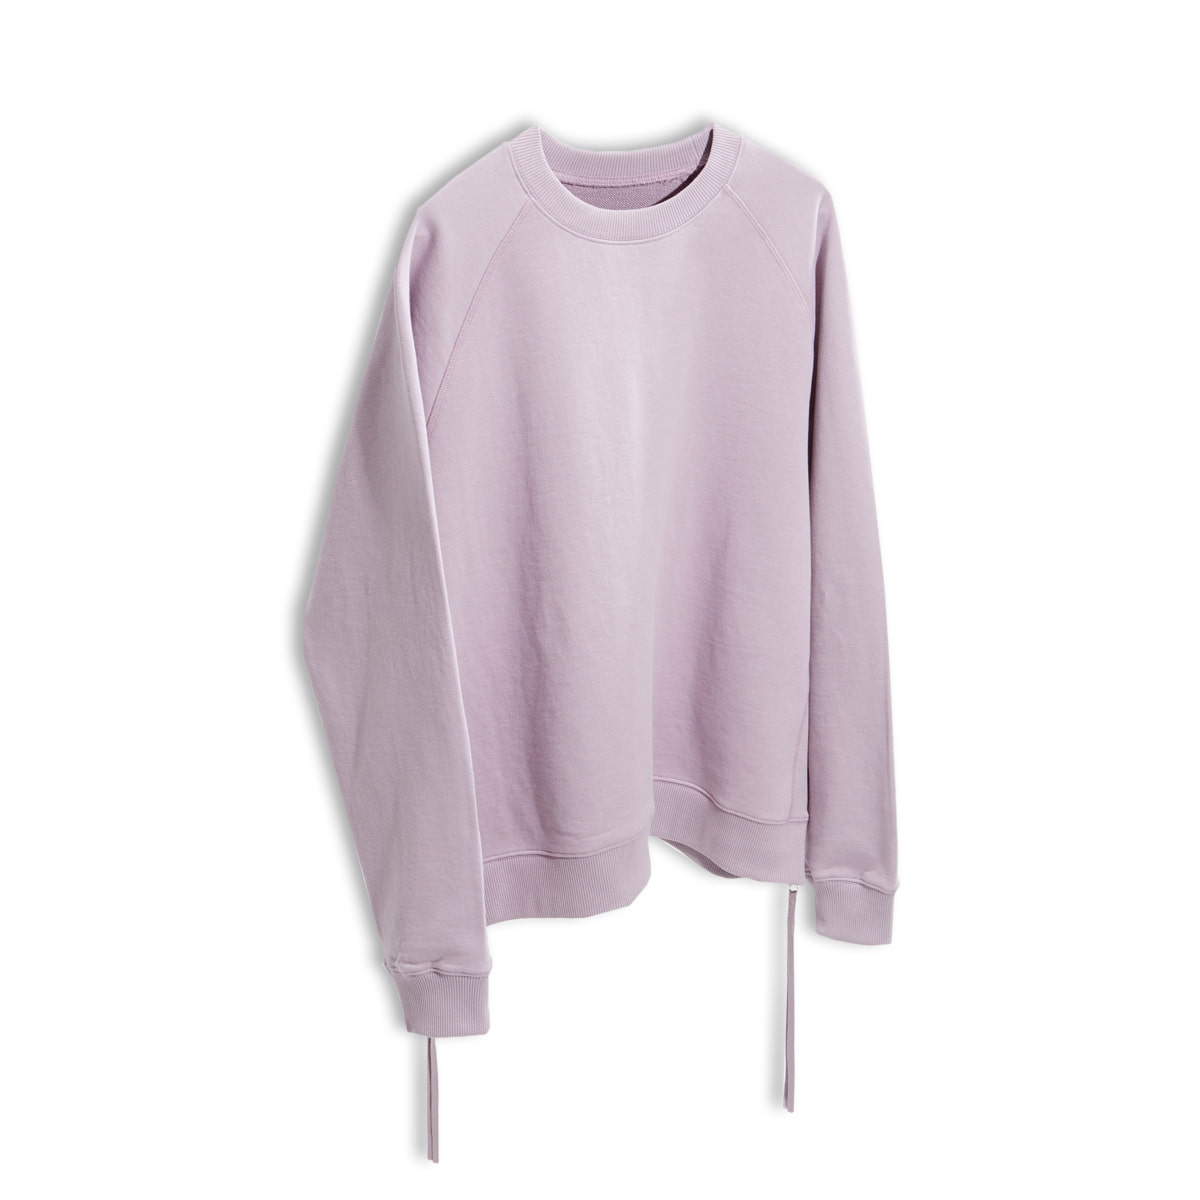 [YOUTH] SIDE ZIP-UP SWEATSHIRT 'LIGHT PURPLE'